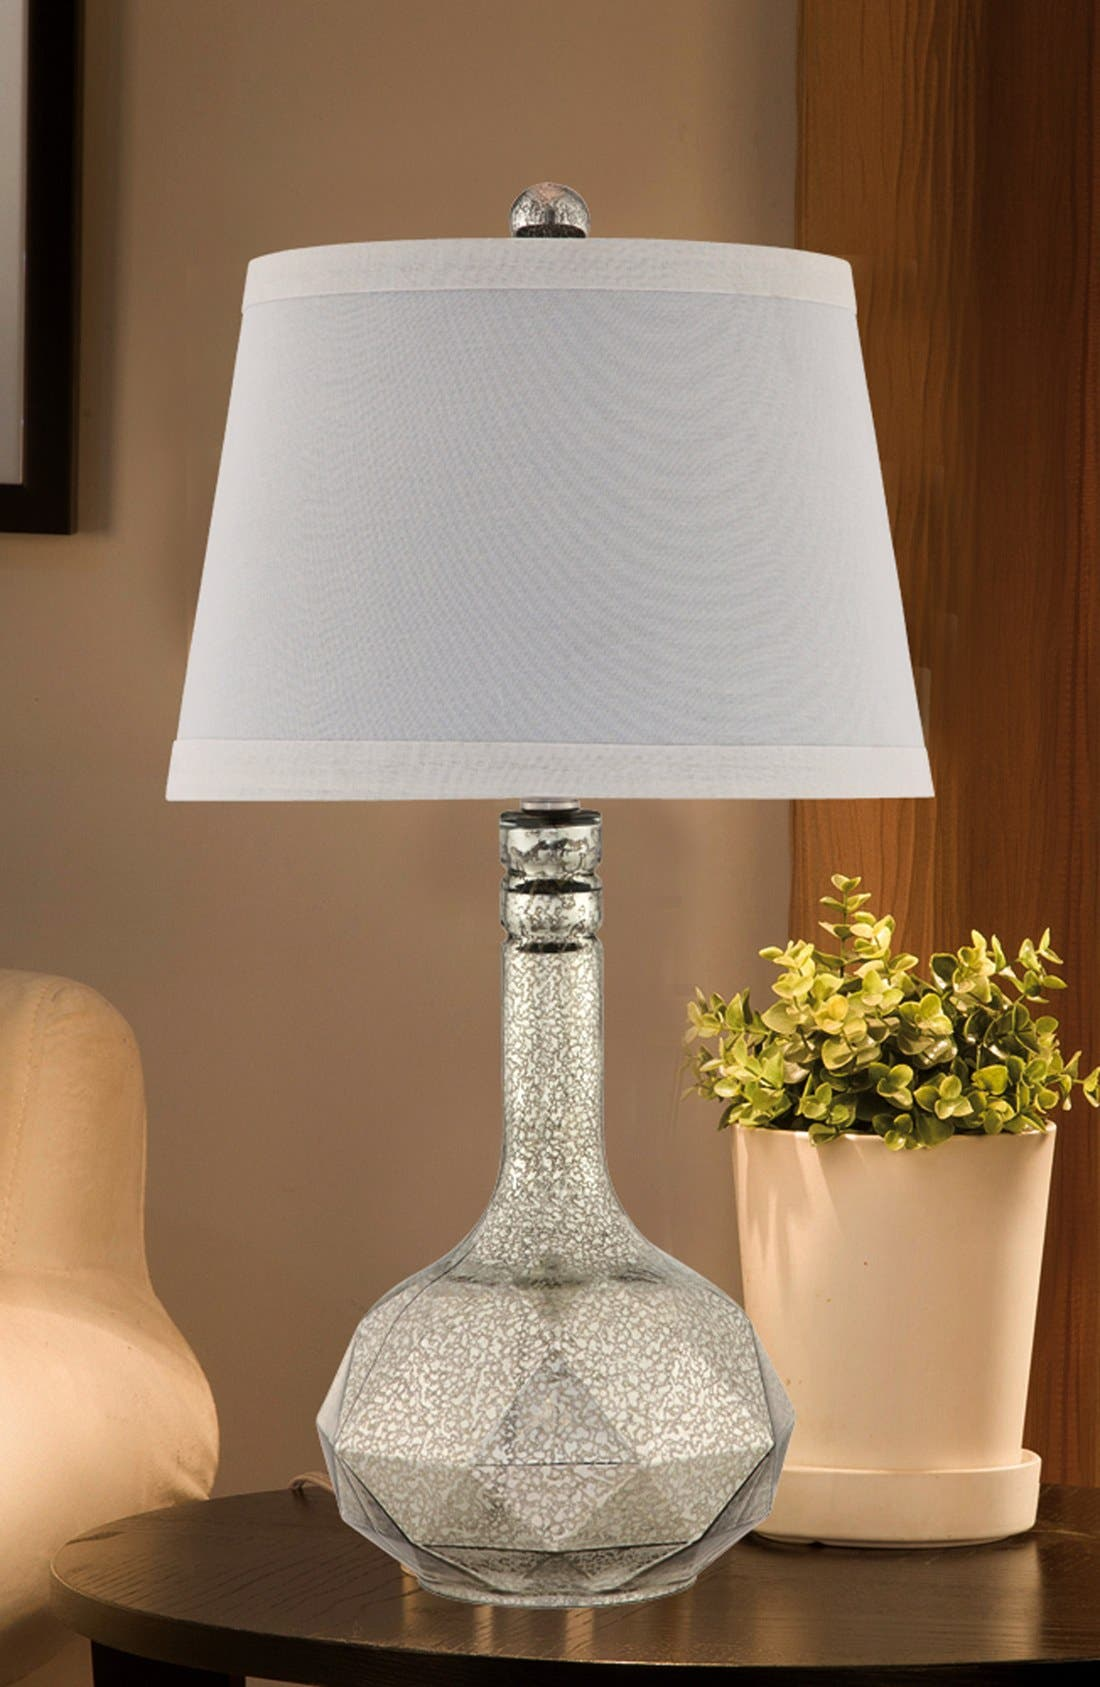 Mercury Glass Table Lamp,                             Alternate thumbnail 2, color,                             Silver/ Brushed Nickel